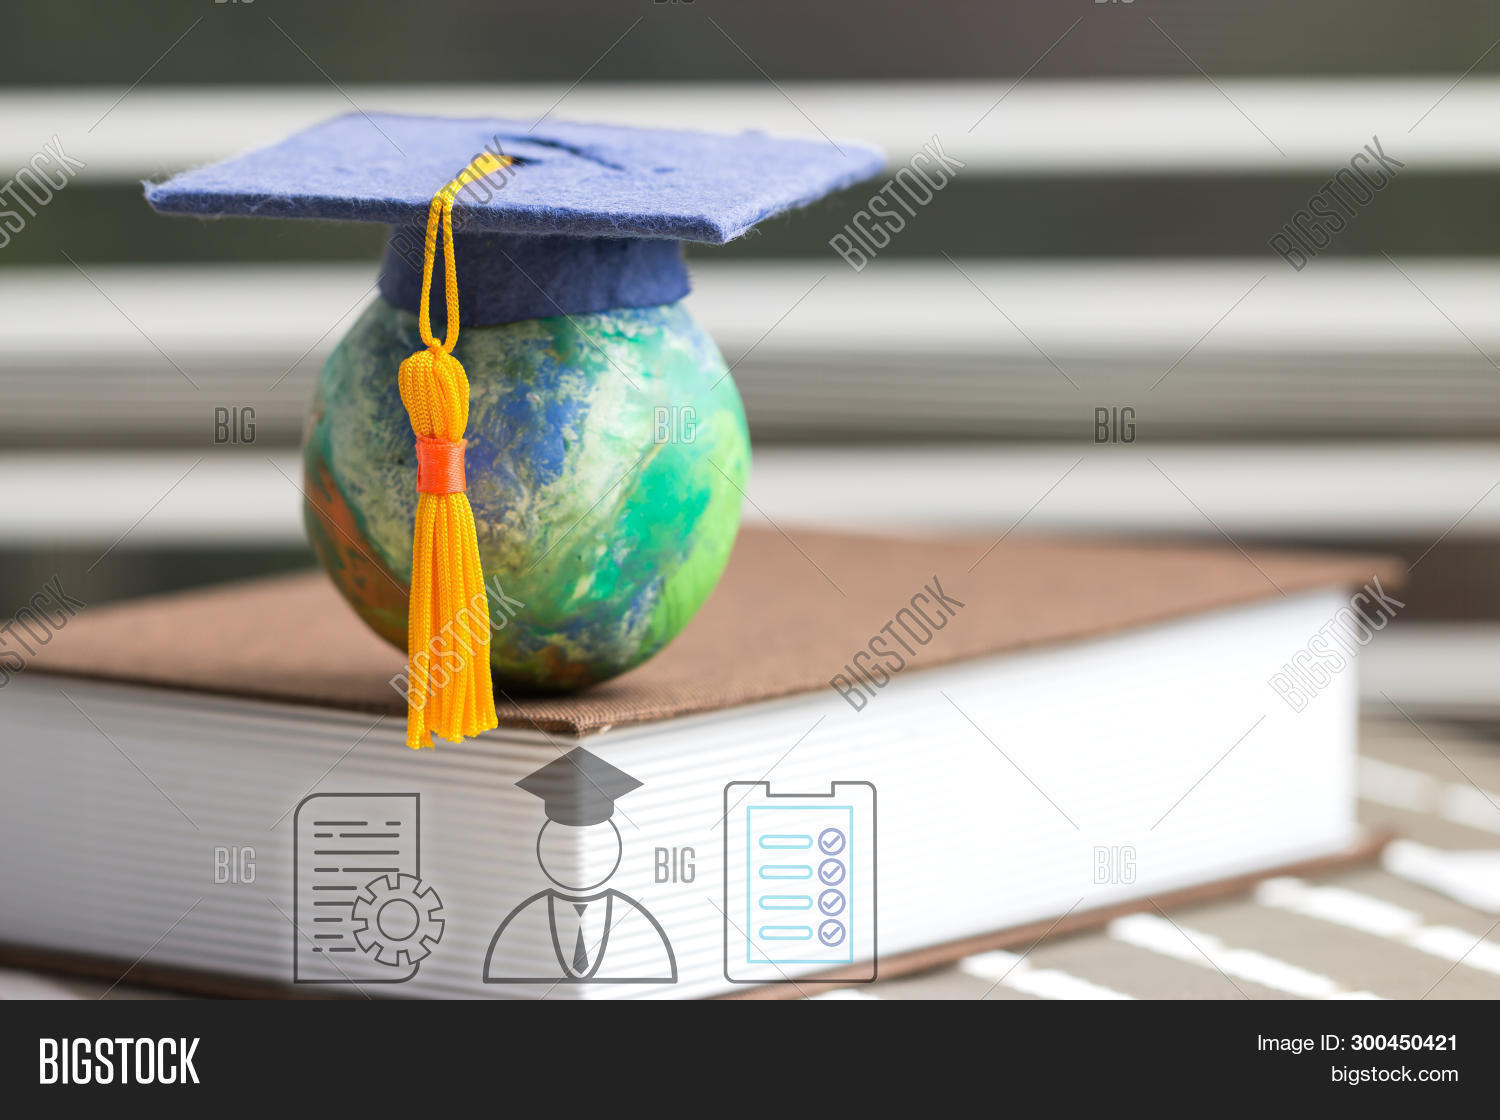 abroad,academy,background,book,business,cap,ceremony,classroom,college,computer,concept,degree,diploma,earth,educ,educate,education,educational,environment,exam,global,graduate,graduating,graduation,icon,international,knowledge,learn,learning,library,literacy,literature,map,master,monitor,mortarboard,nature,paper,planet,radar,scholarship,school,student,study,success,teacher,test,travel,university